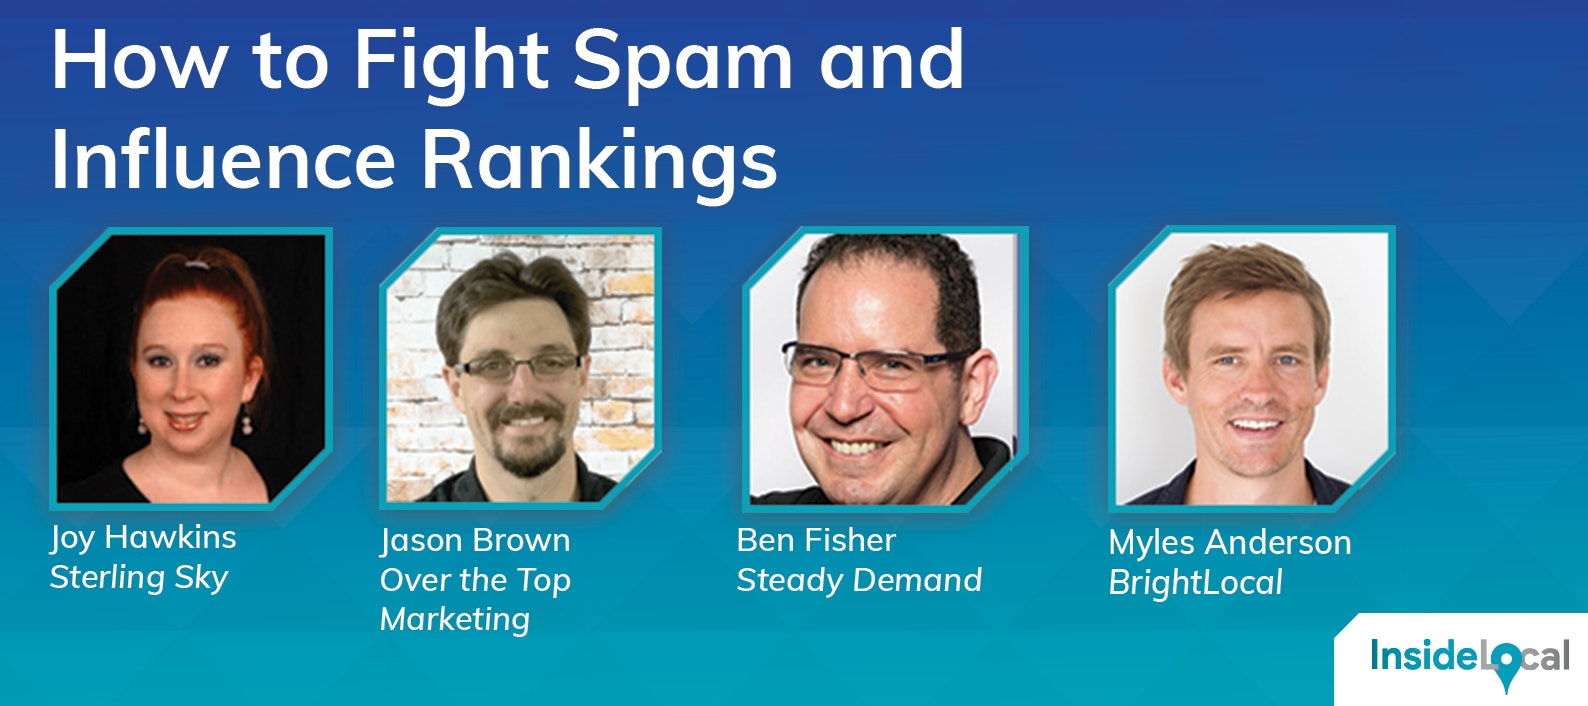 How to Fight Spam and Influence Rankings